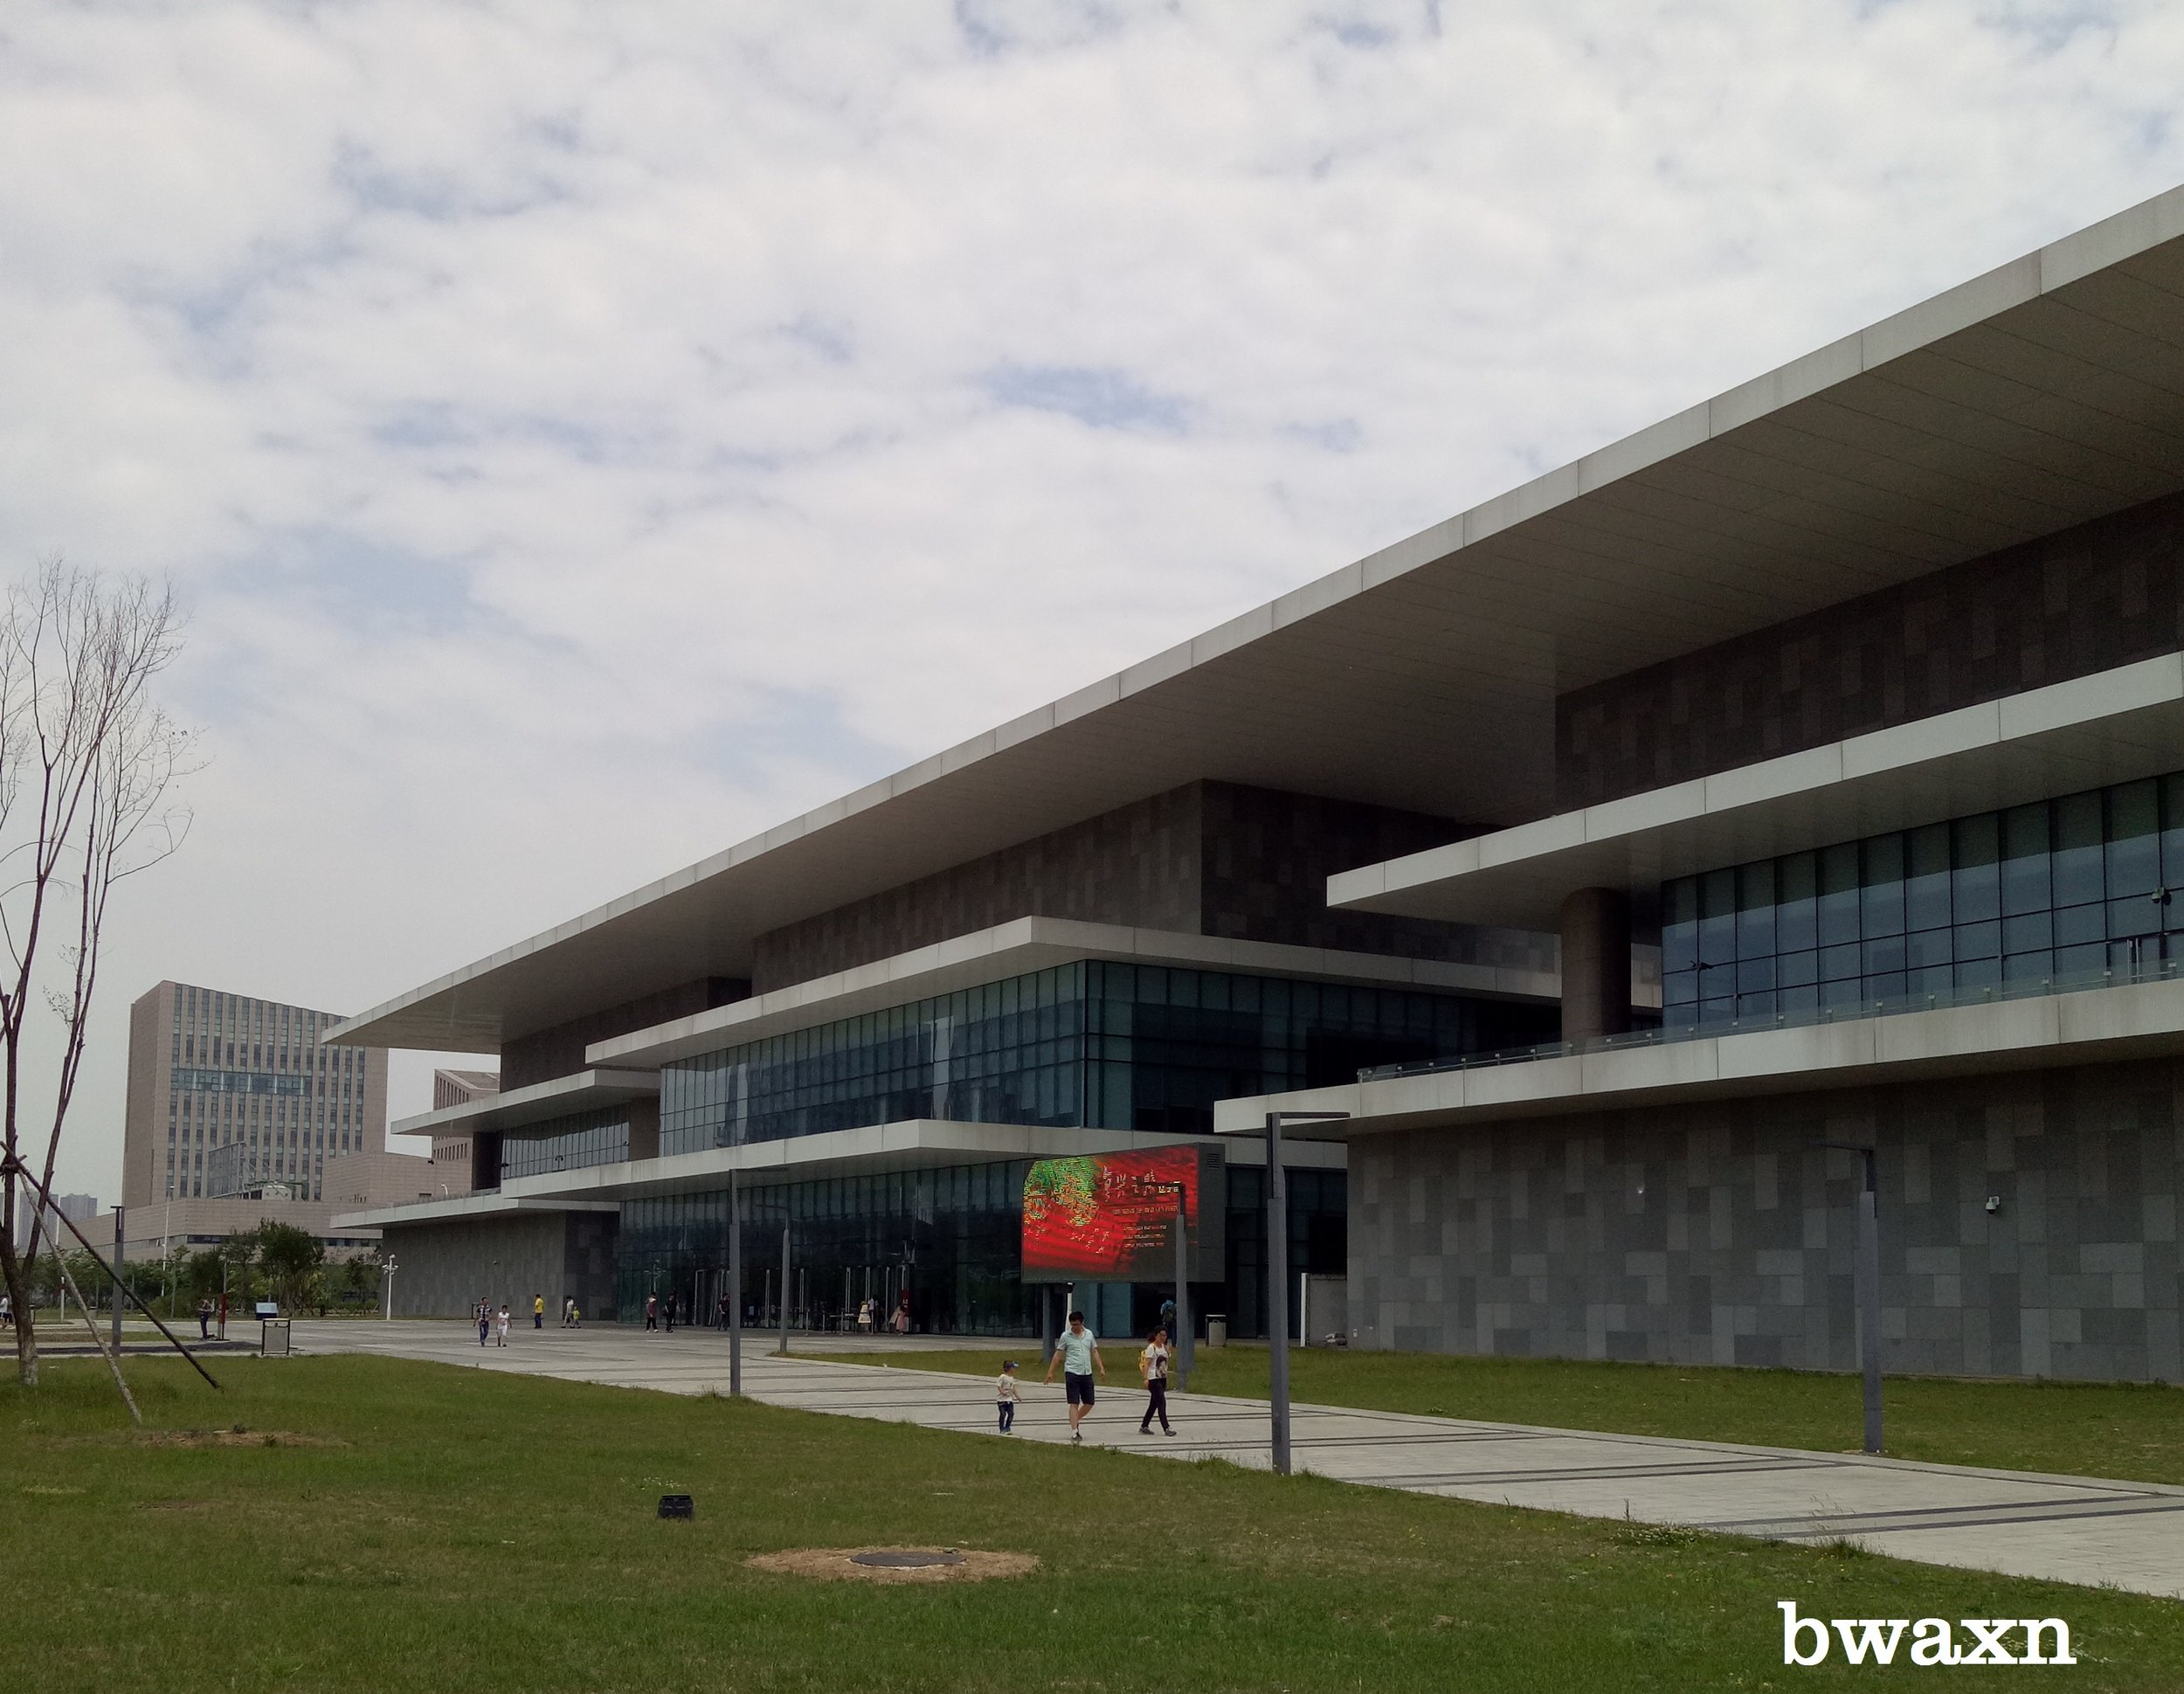 The Liaoning Provincial Museum